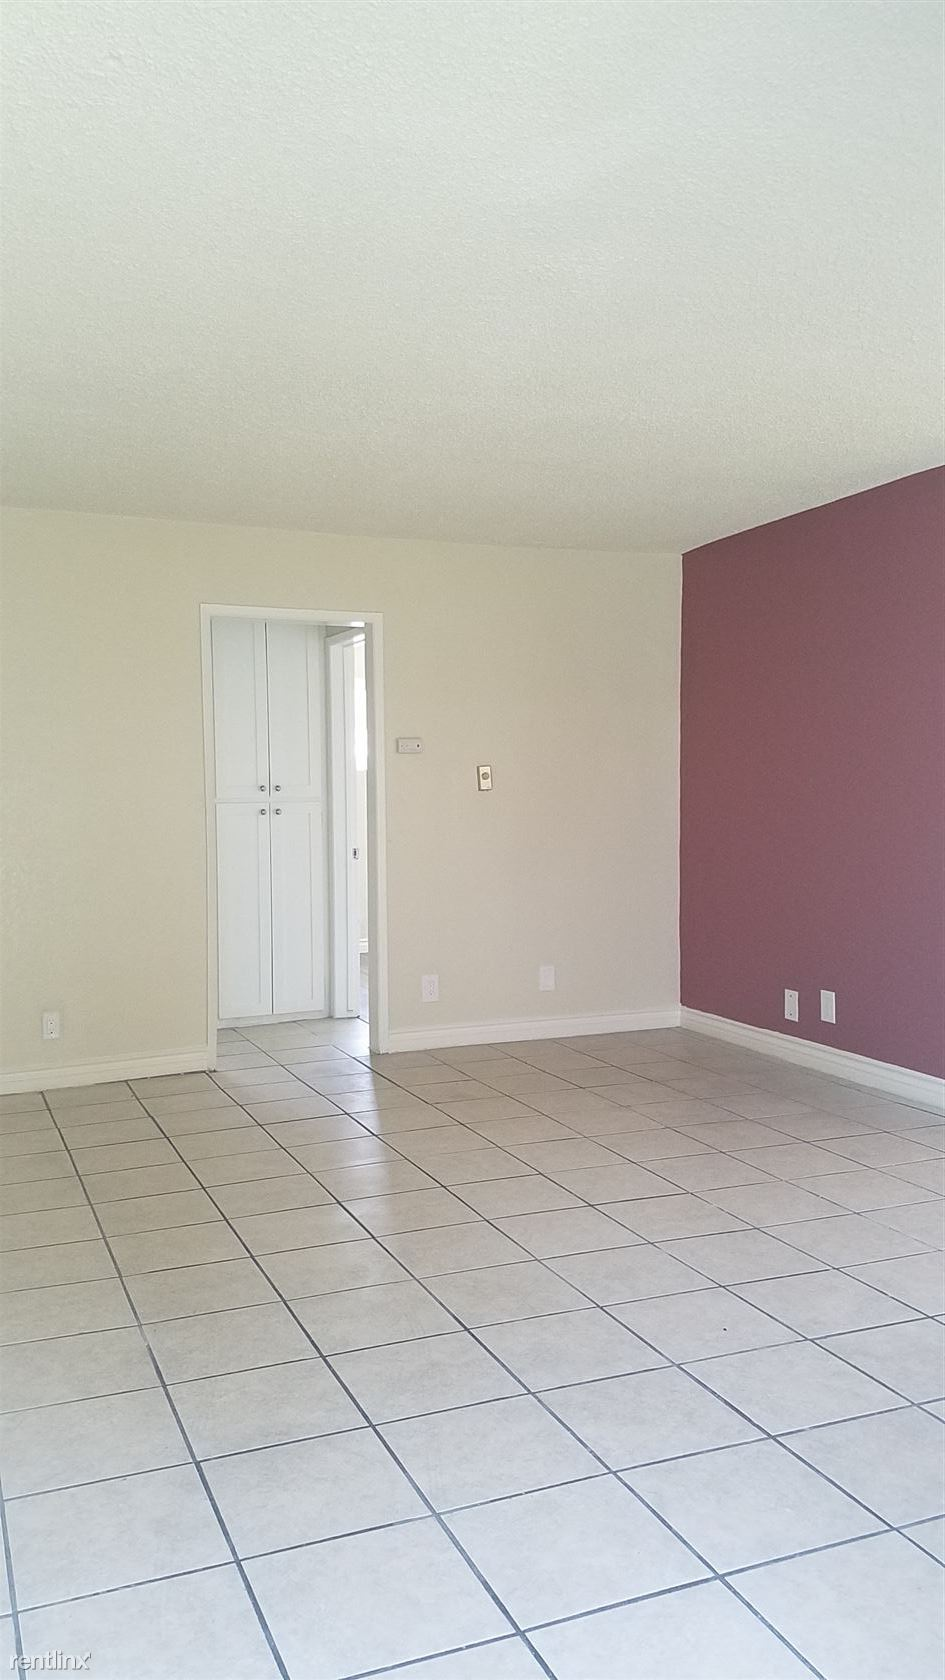 7500 Laurel Canyon Blvd, N Hollywood, CA - $1,500 USD/ month